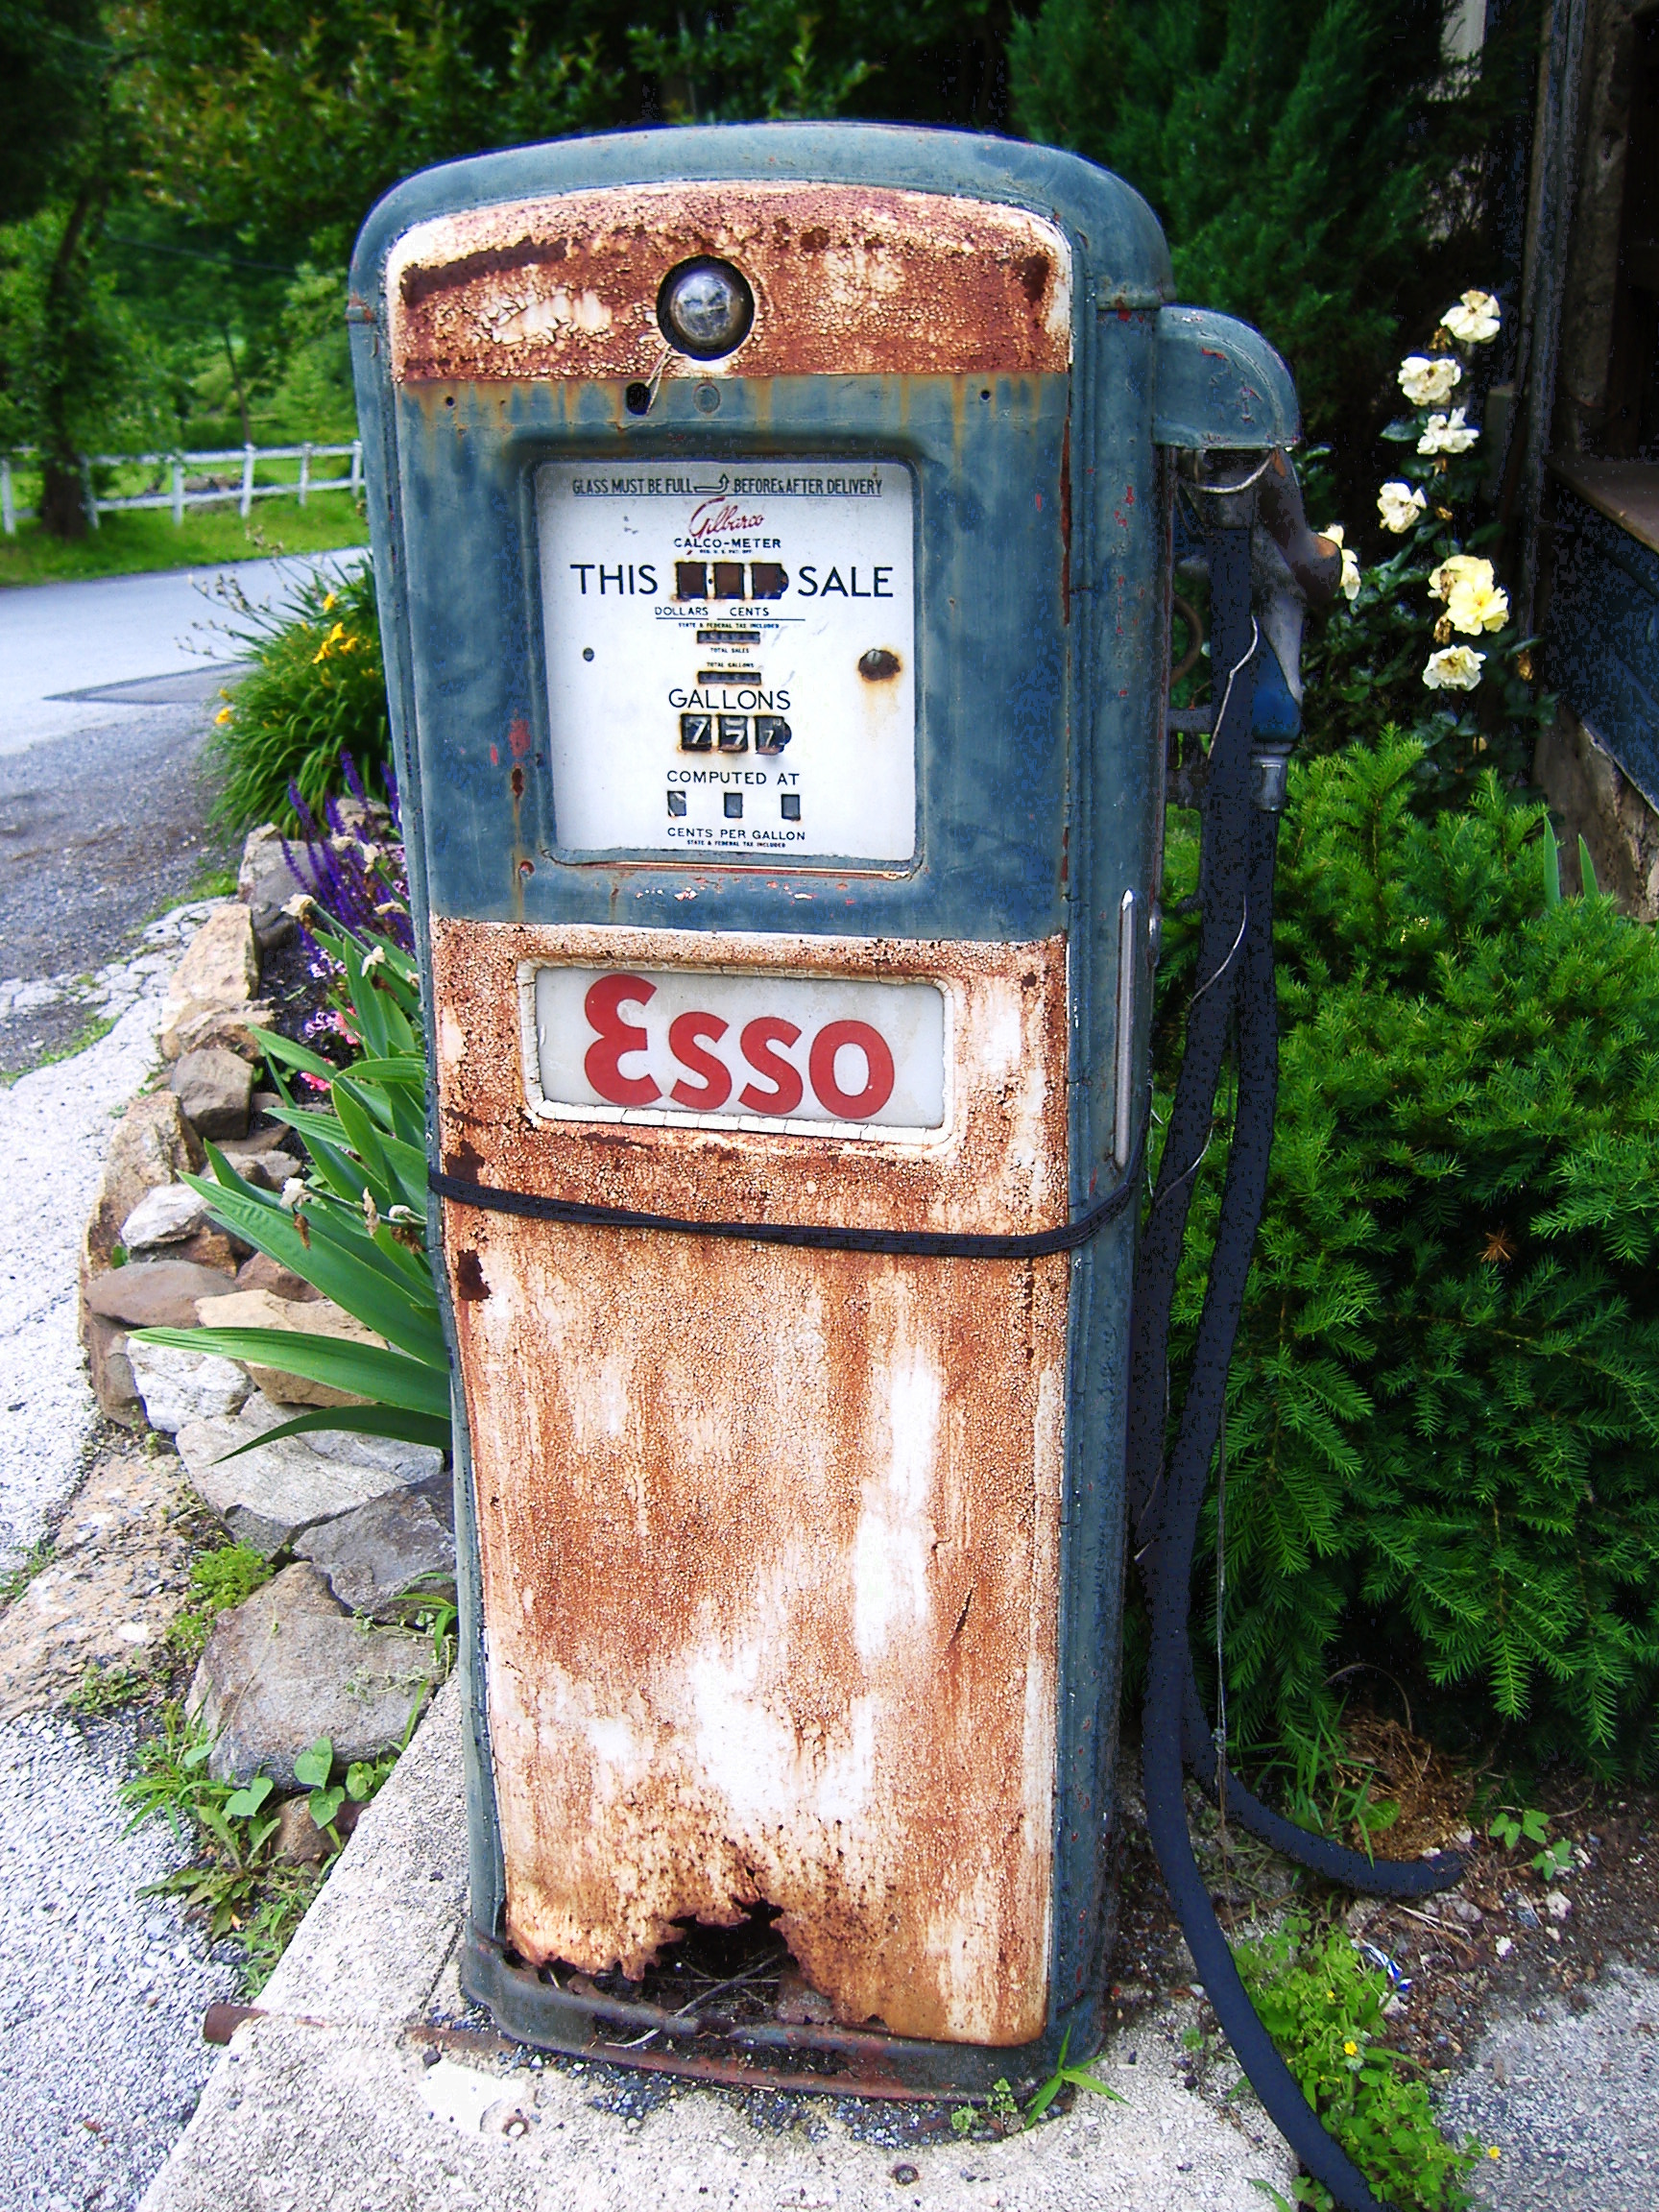 Esso gasoline pump - Birchrunville Store Cafe - 1403 Hollow Road, Birchrunville, Pennsylvania U.S.A. - May 28, 2010